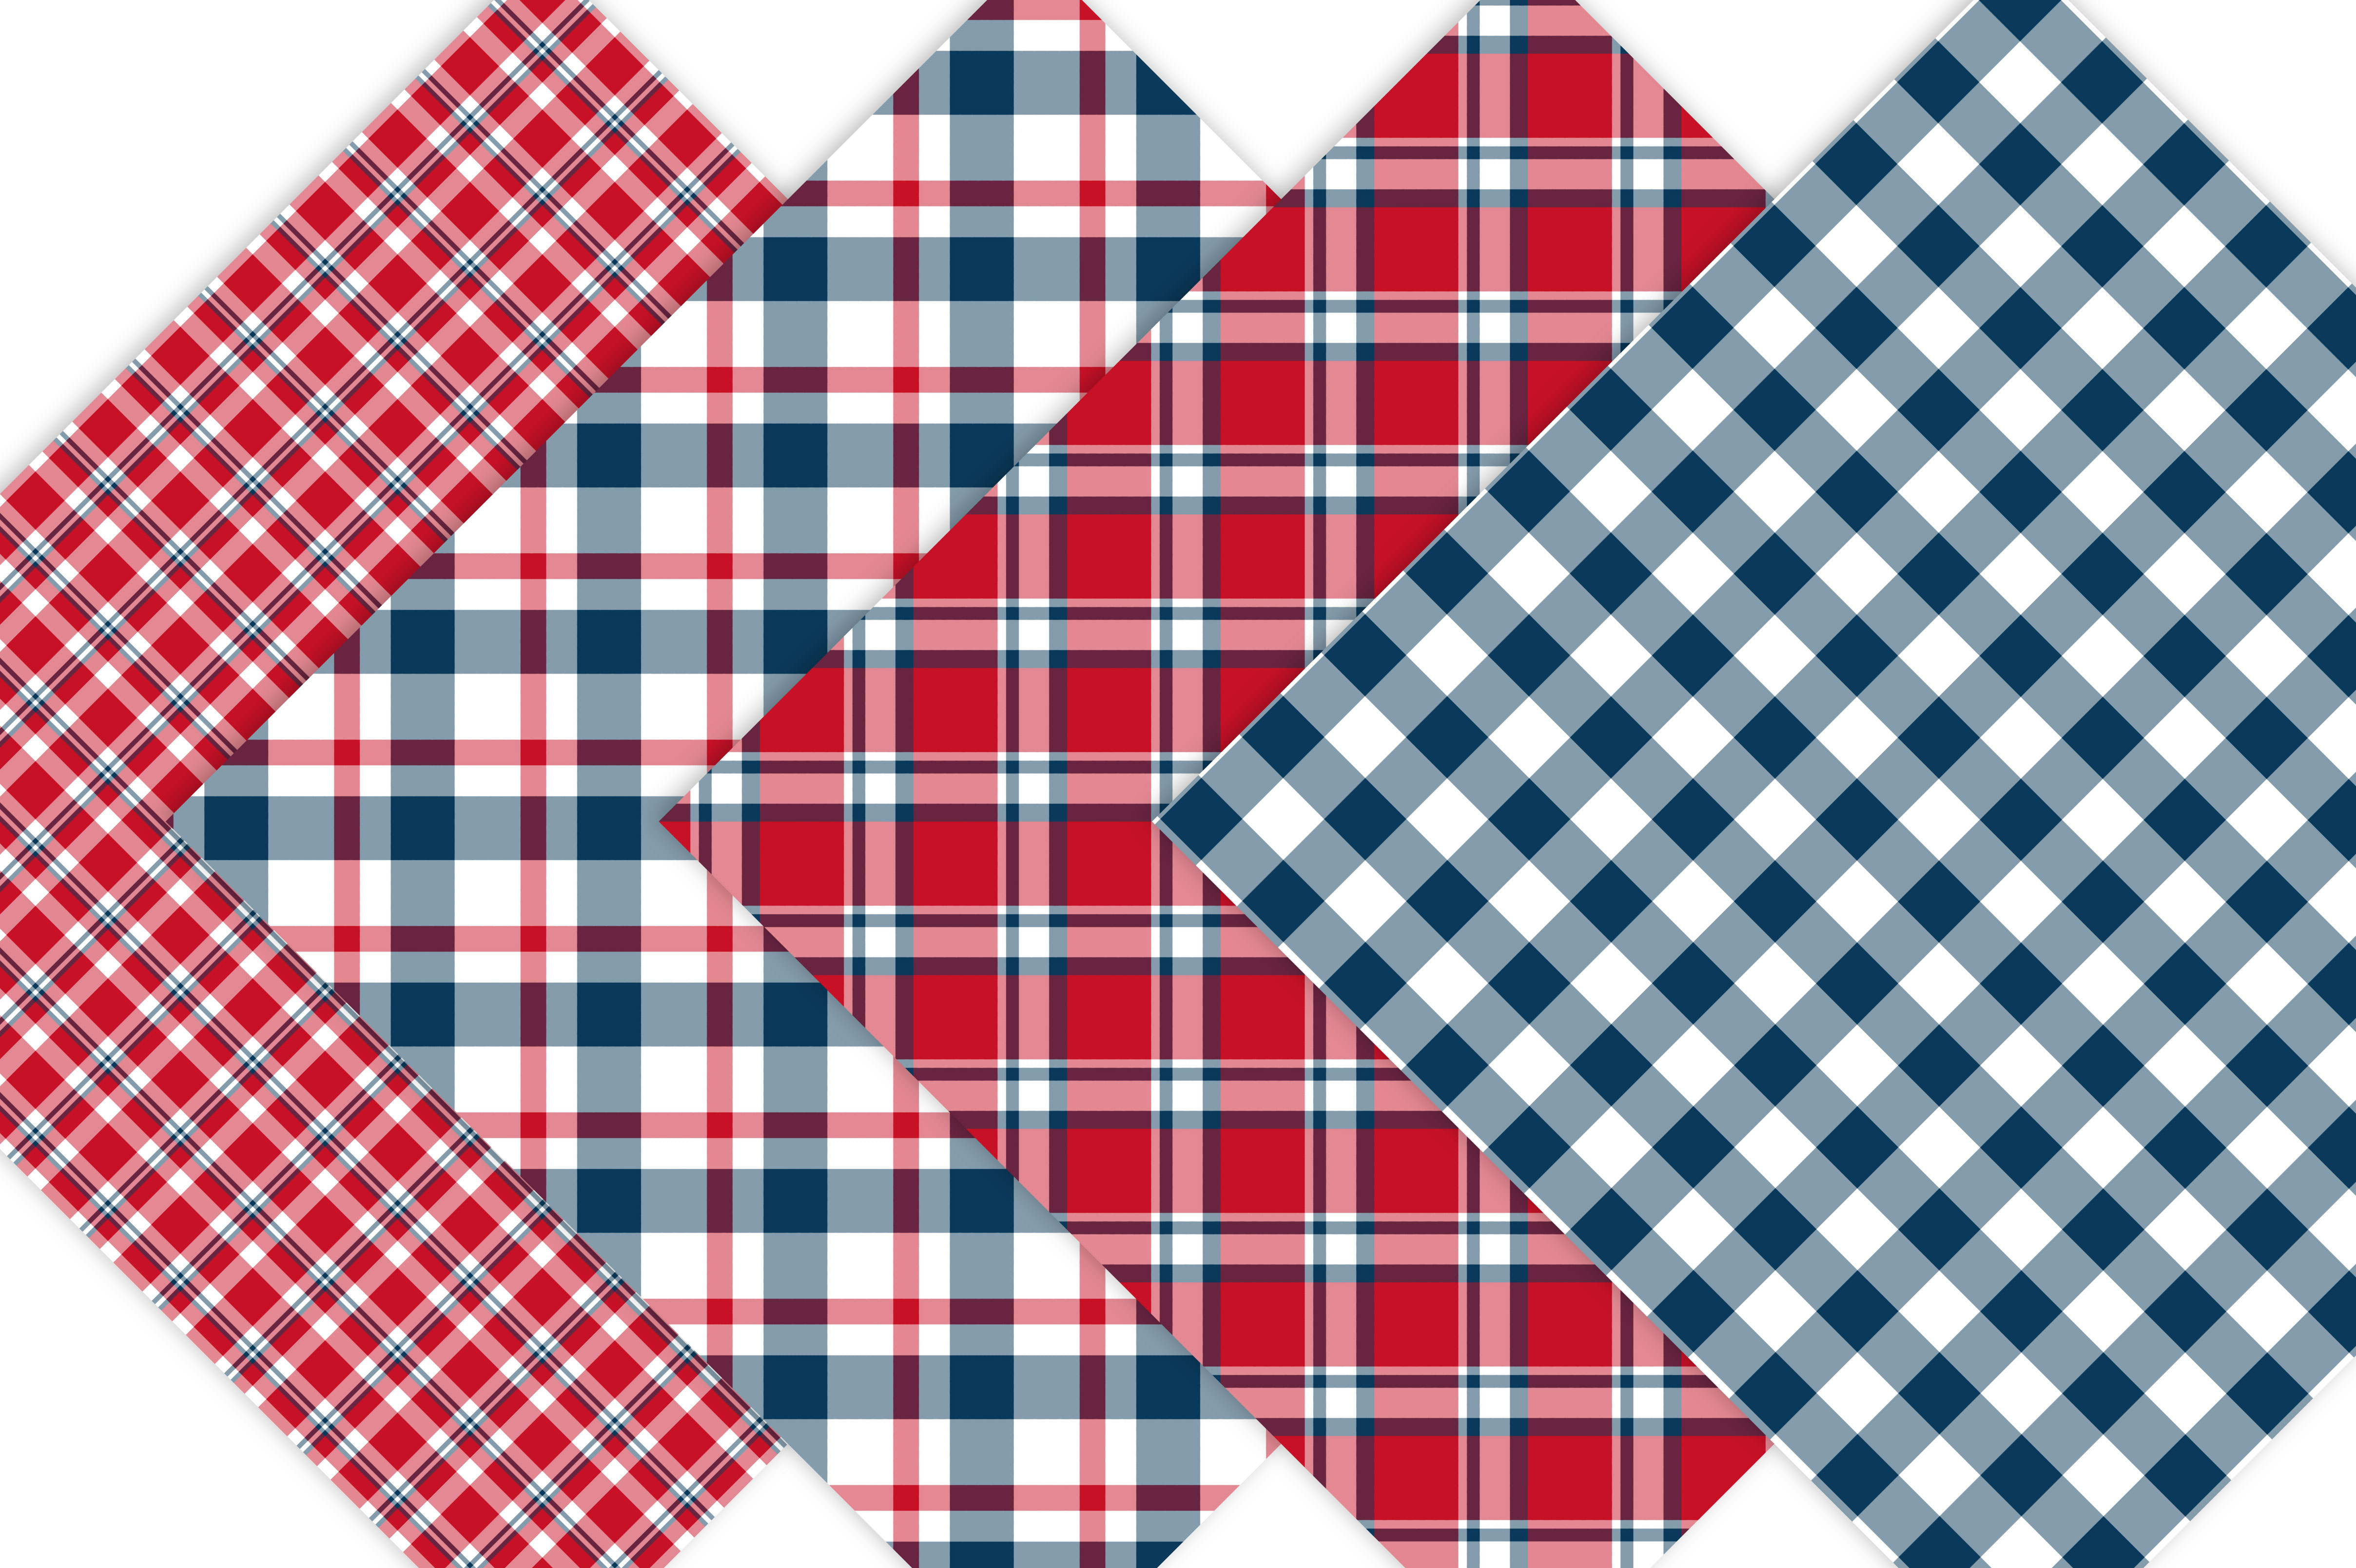 Red White and Blue Plaid Patterns example image 4